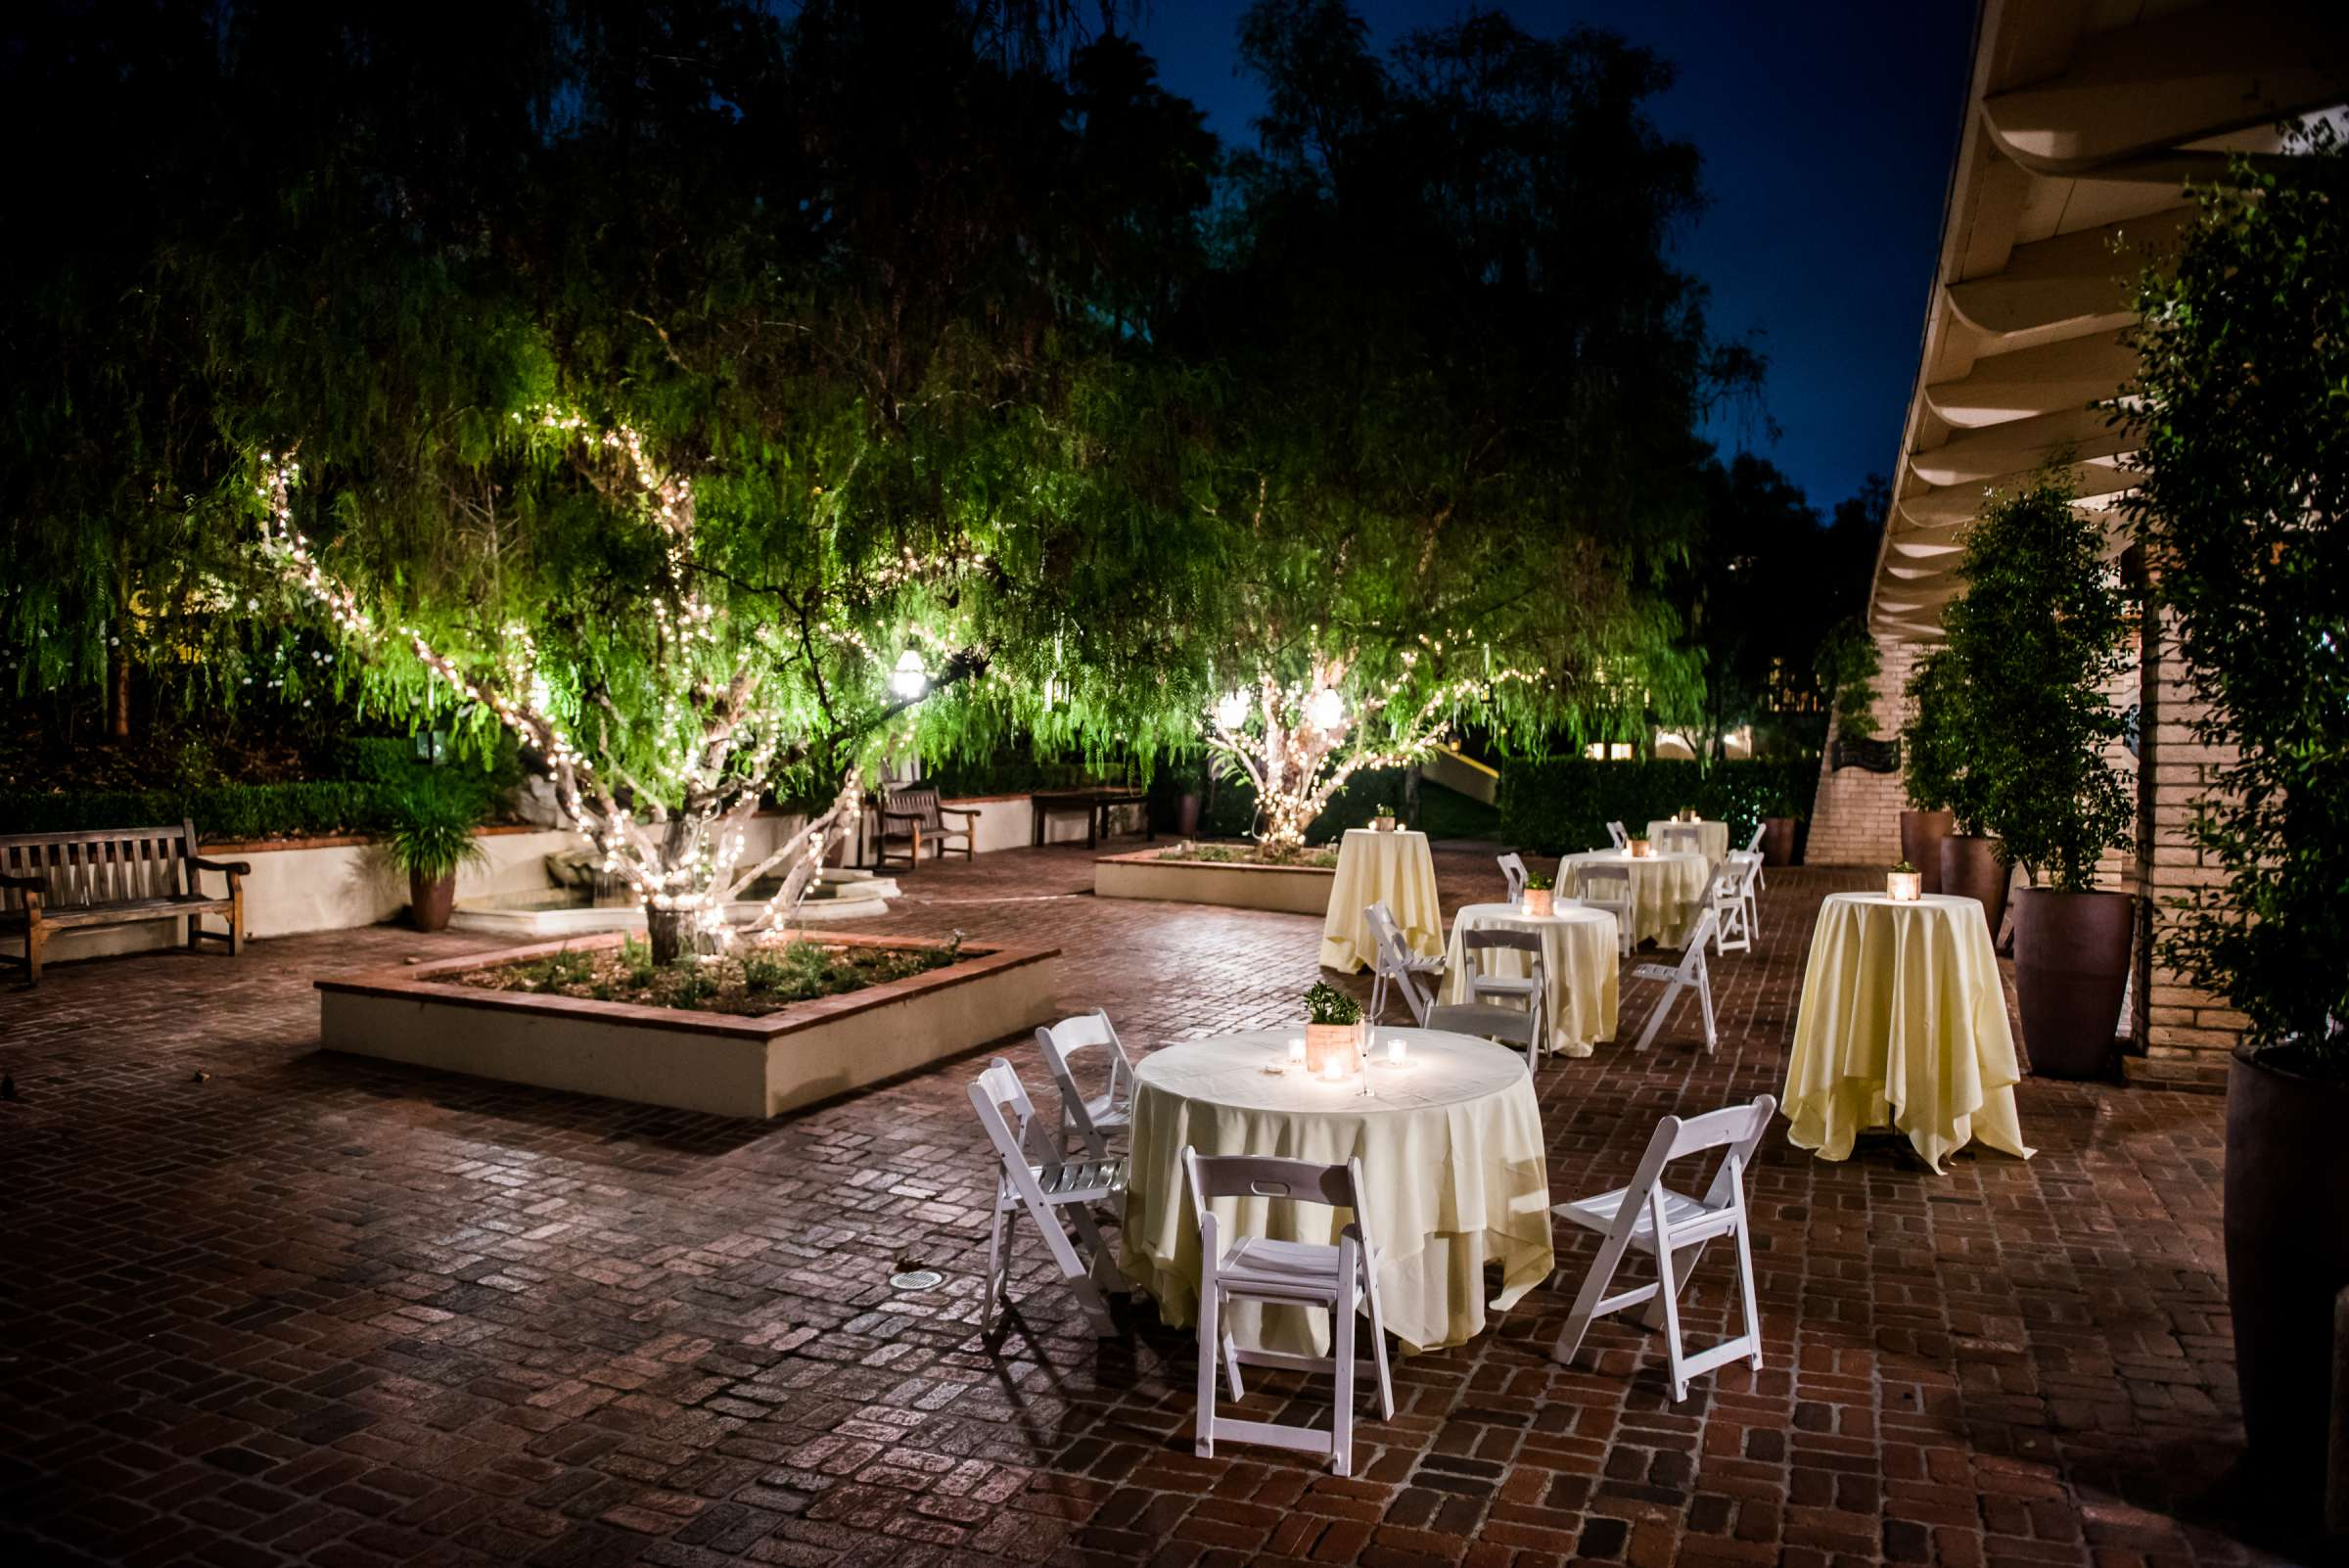 Rancho Bernardo Inn Wedding coordinated by Très Chic Events, Stefania and Nicholas Wedding Photo #103 by True Photography